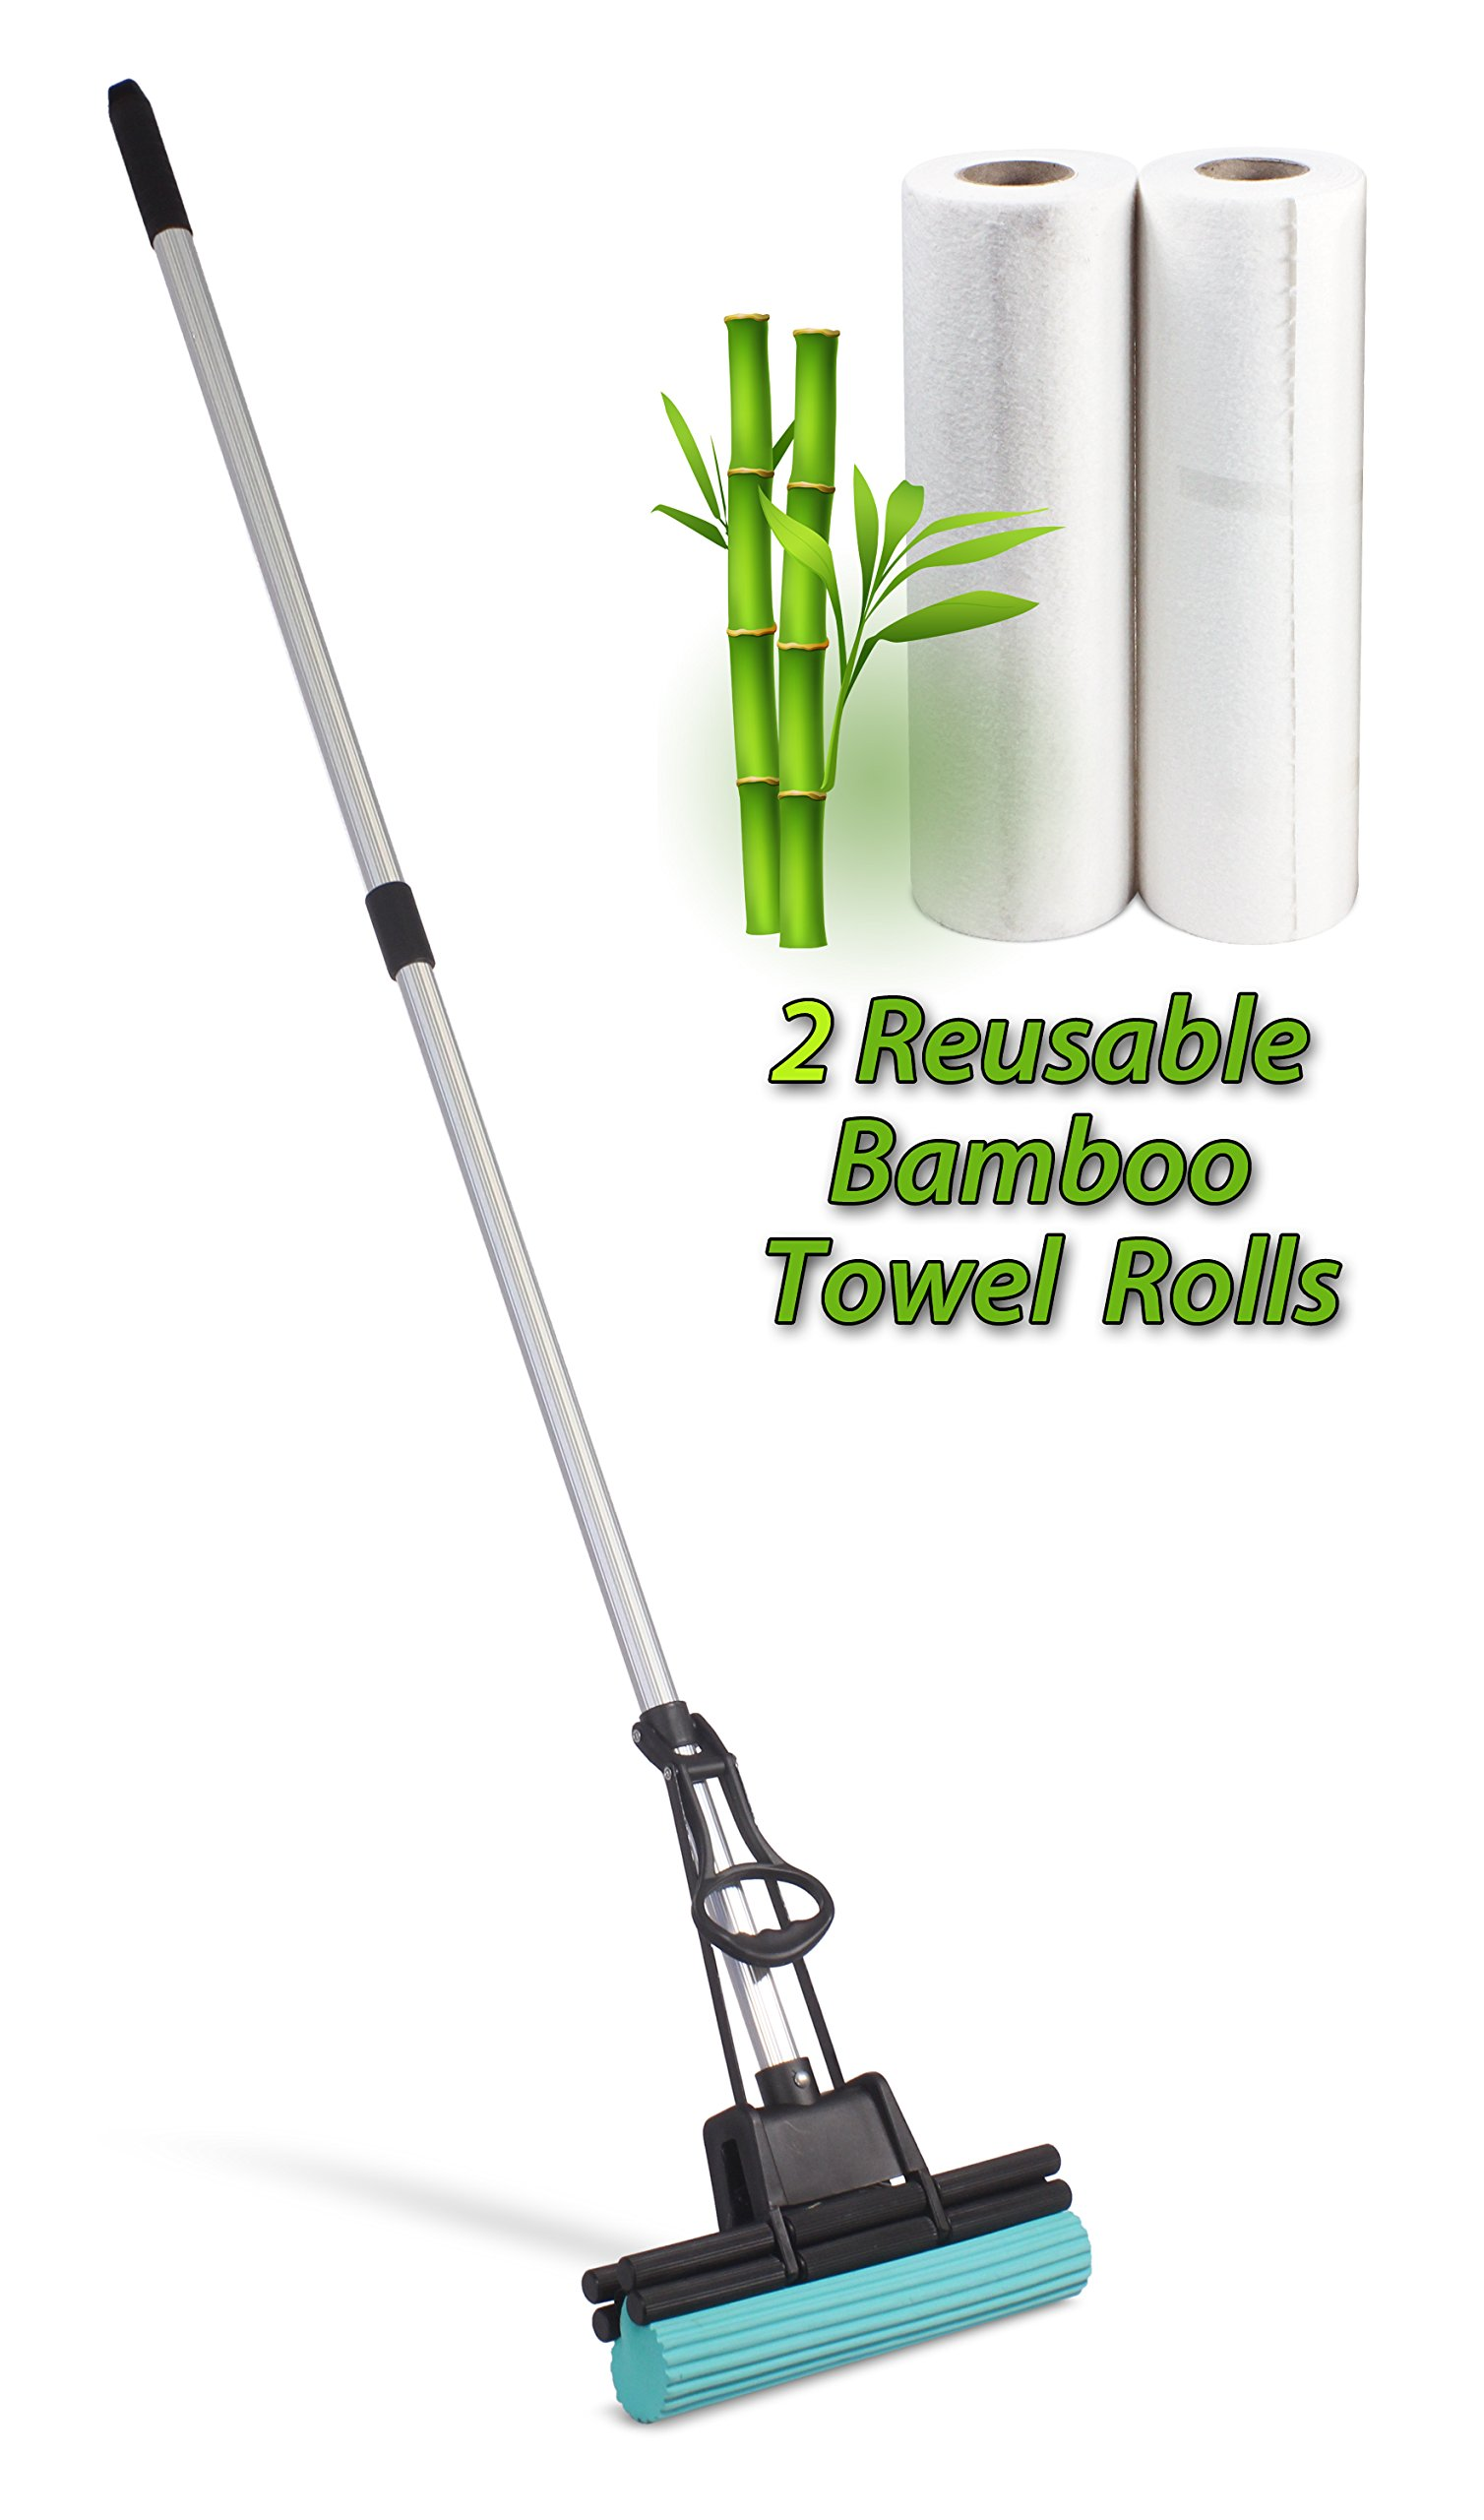 PVA Professional Double Roller Ultra Foam Rubber Mop Cleaning Kit (PVA Mop - 2 Rolls Bamboo Towels)